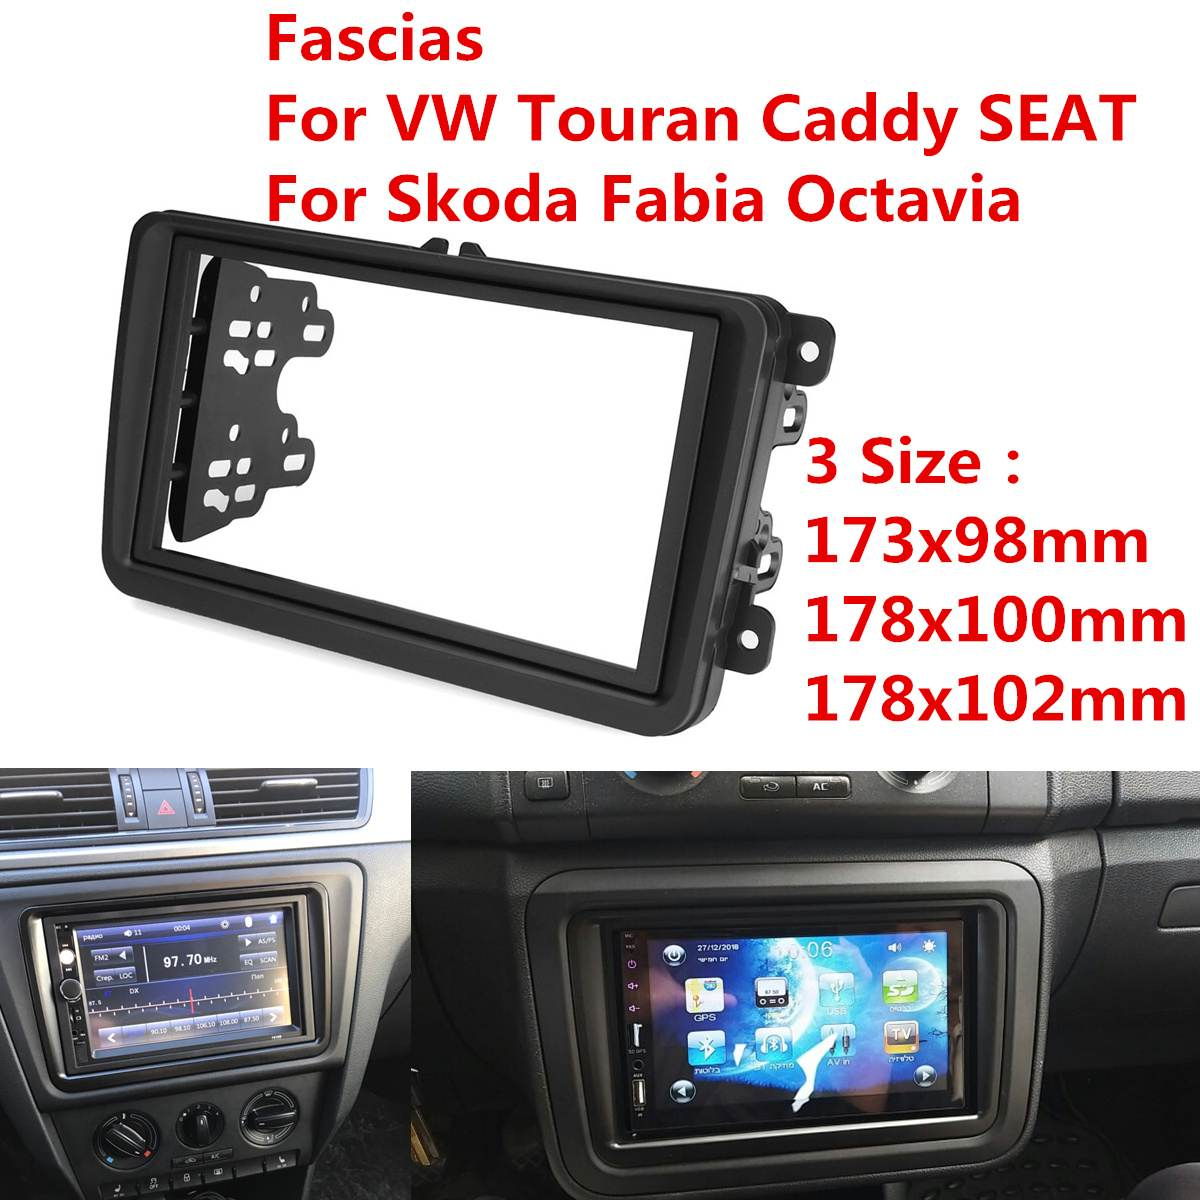 2 Din Car <font><b>Radio</b></font> Fascia Fascias Panel Frame CD DVD Dash Audio Interior for Volkswagen <font><b>VW</b></font> <font><b>Touran</b></font> Caddy SEAT Skoda Fabia Octavia image